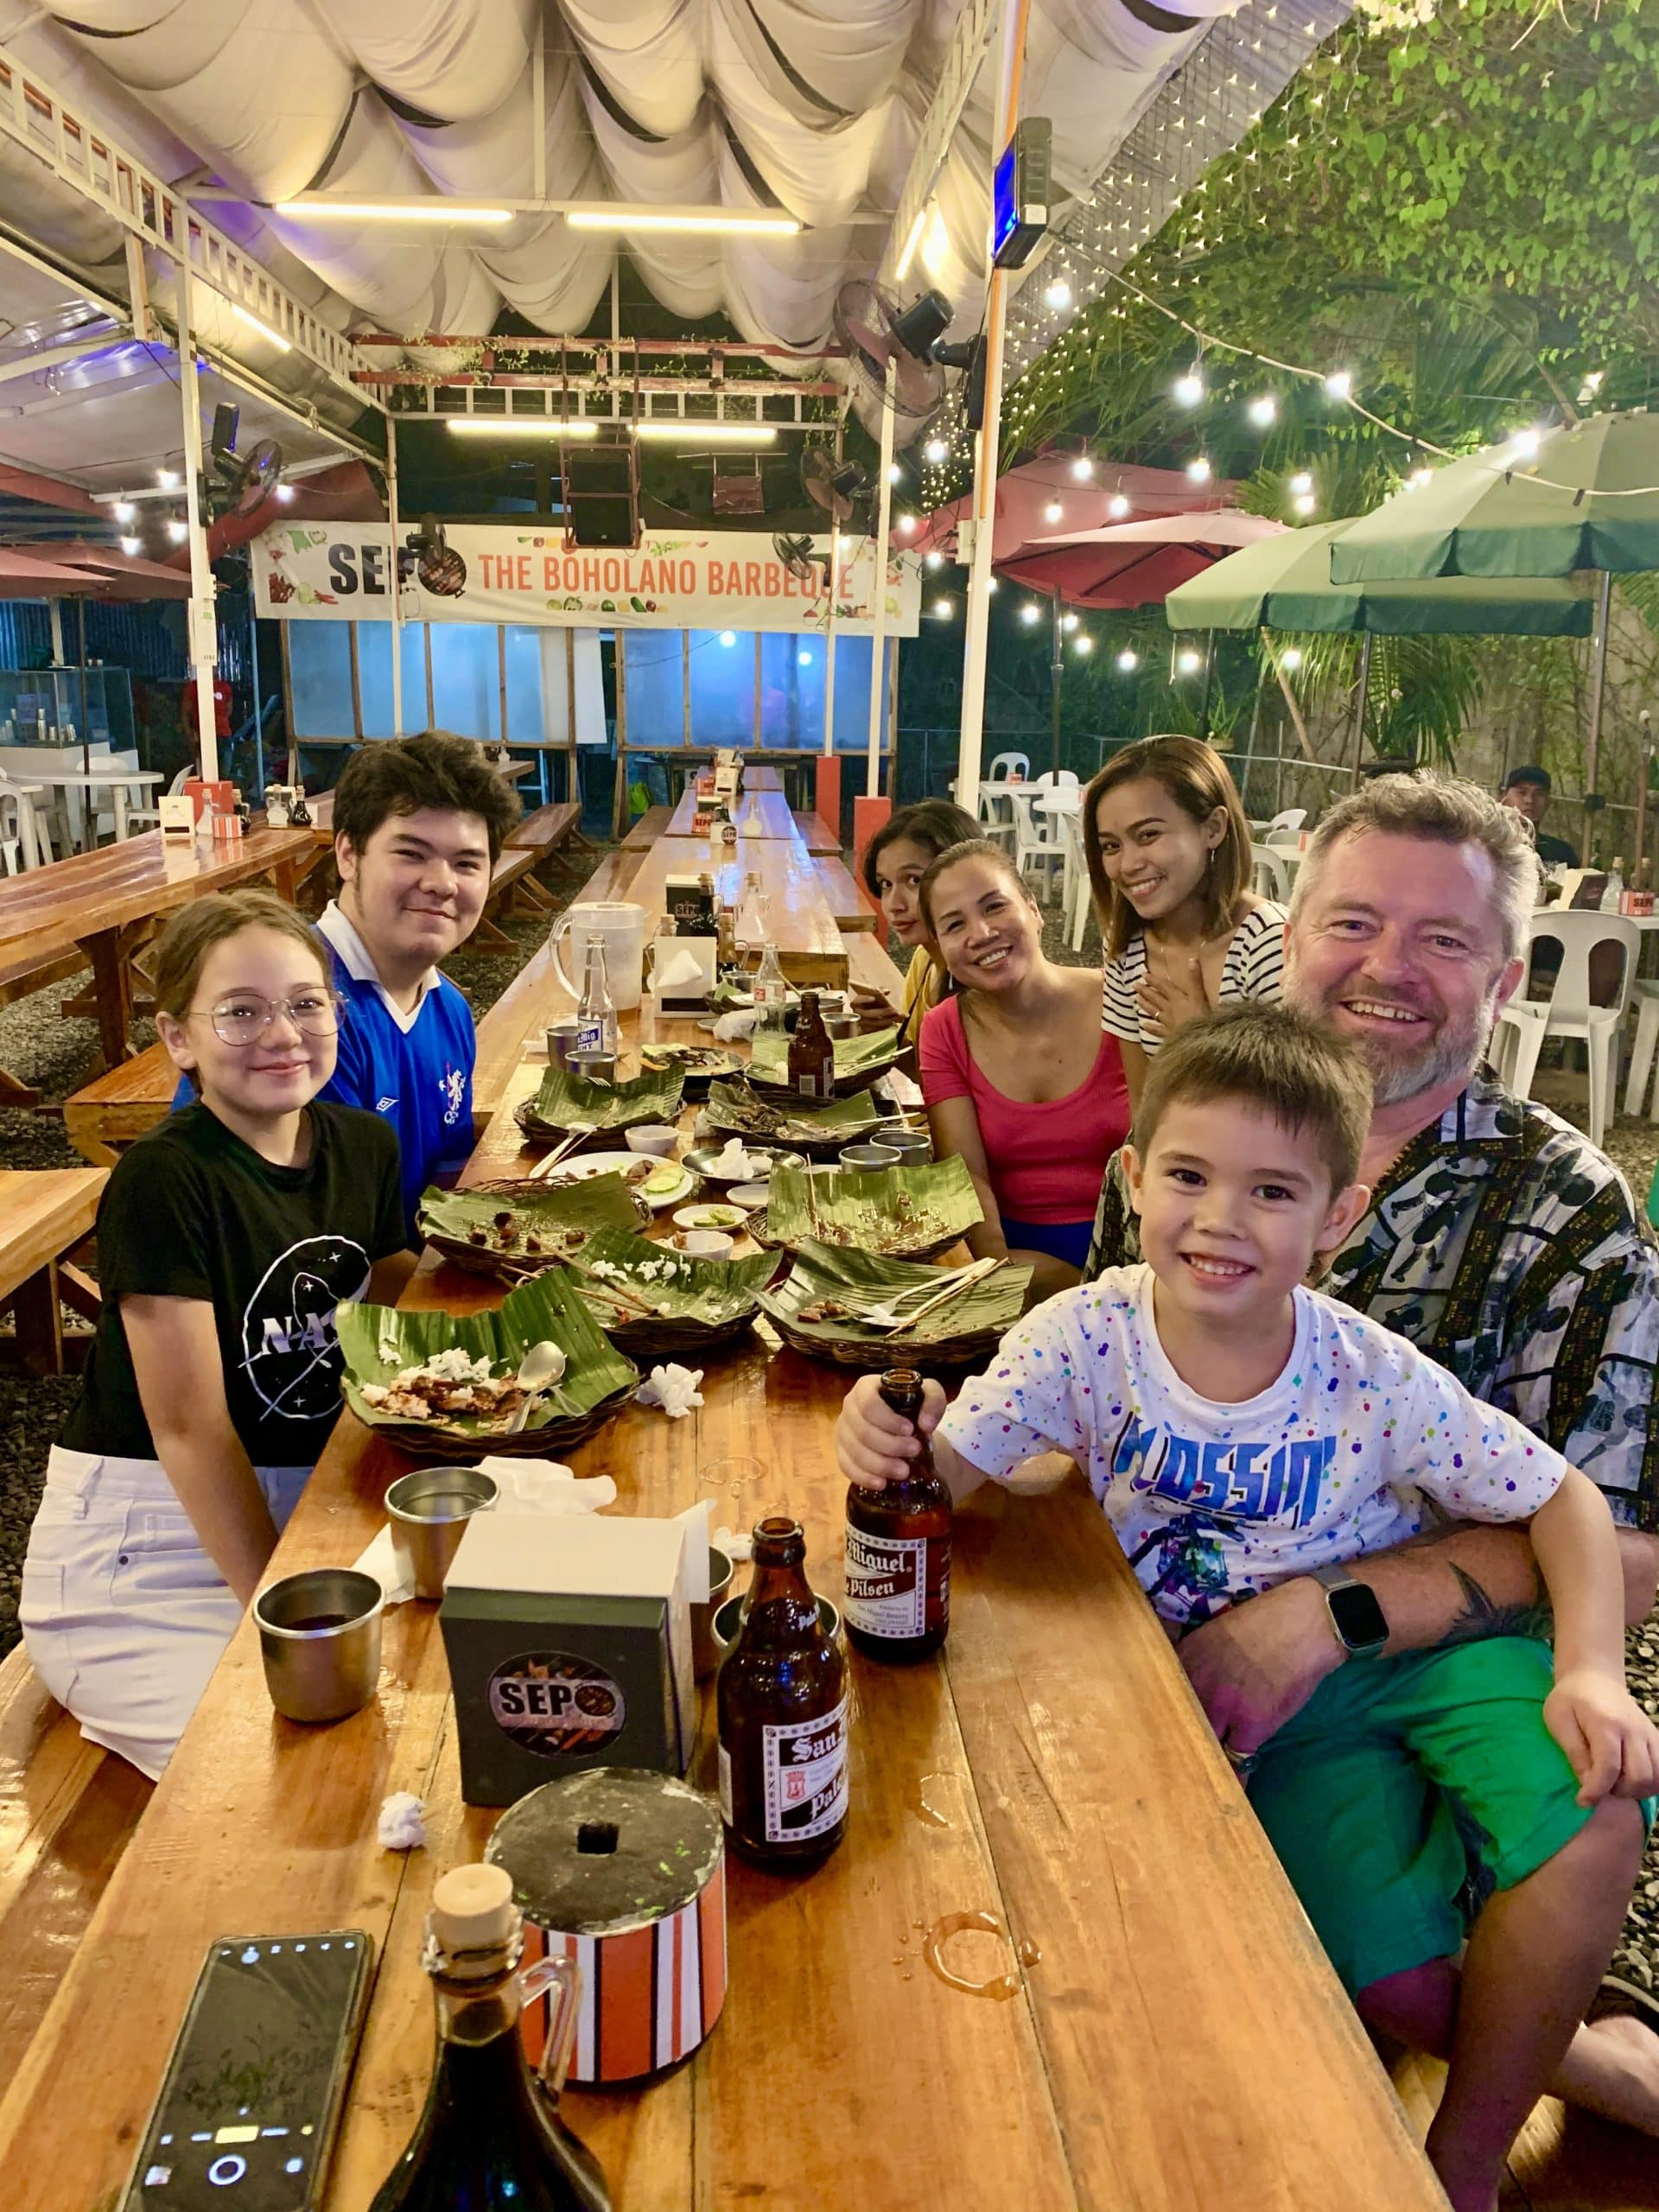 Day 2, 3, 4 & 5 in Bohol - eating our way through the island